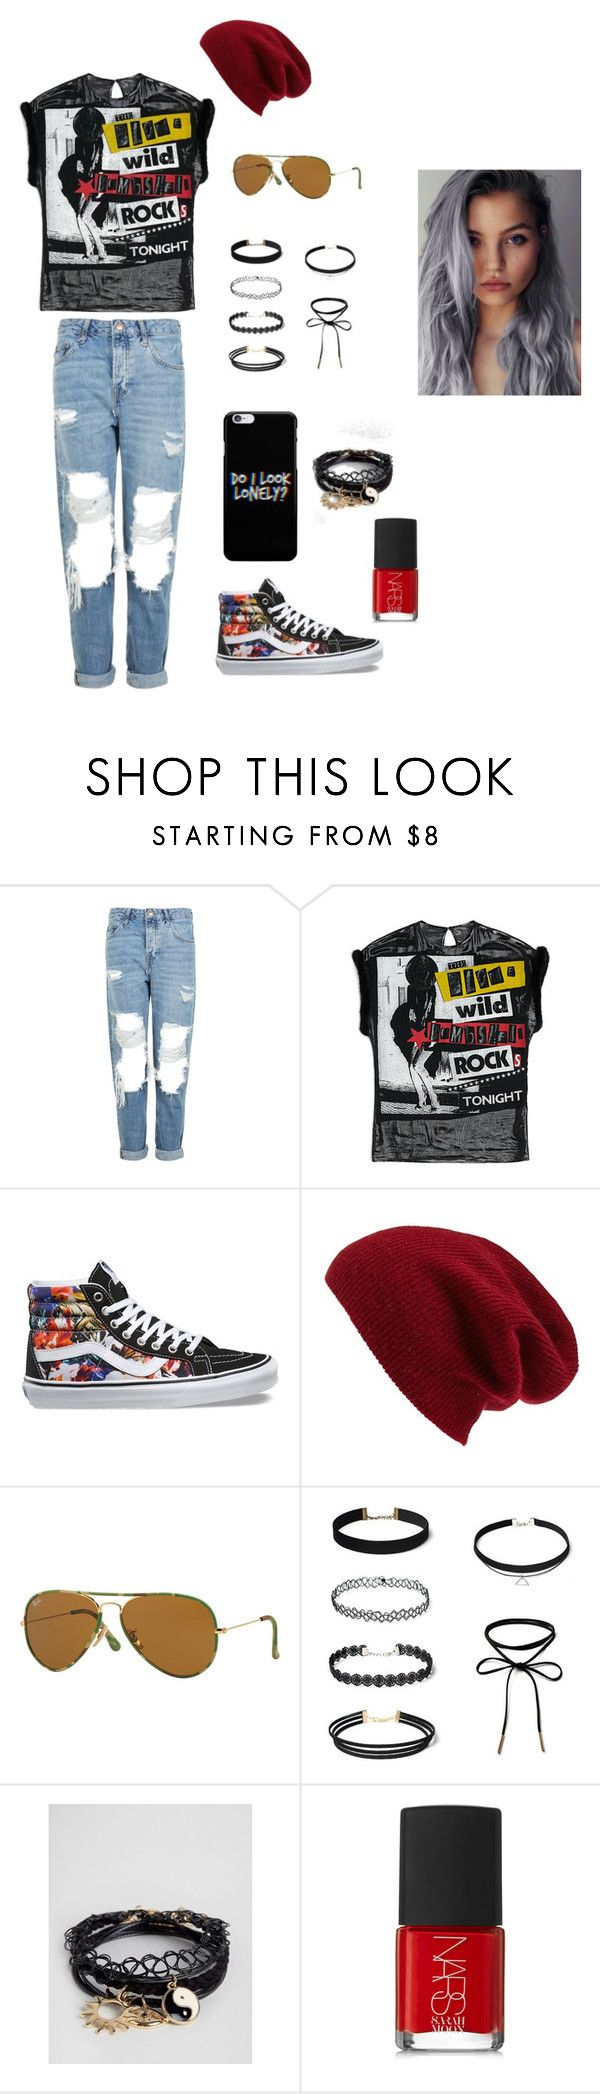 """Concert Outfit"" by coldplay-shirt on Polyvore featuring Topshop, Vans, Halogen, Ray-Ban, ASOS and NARS Cosmetics"